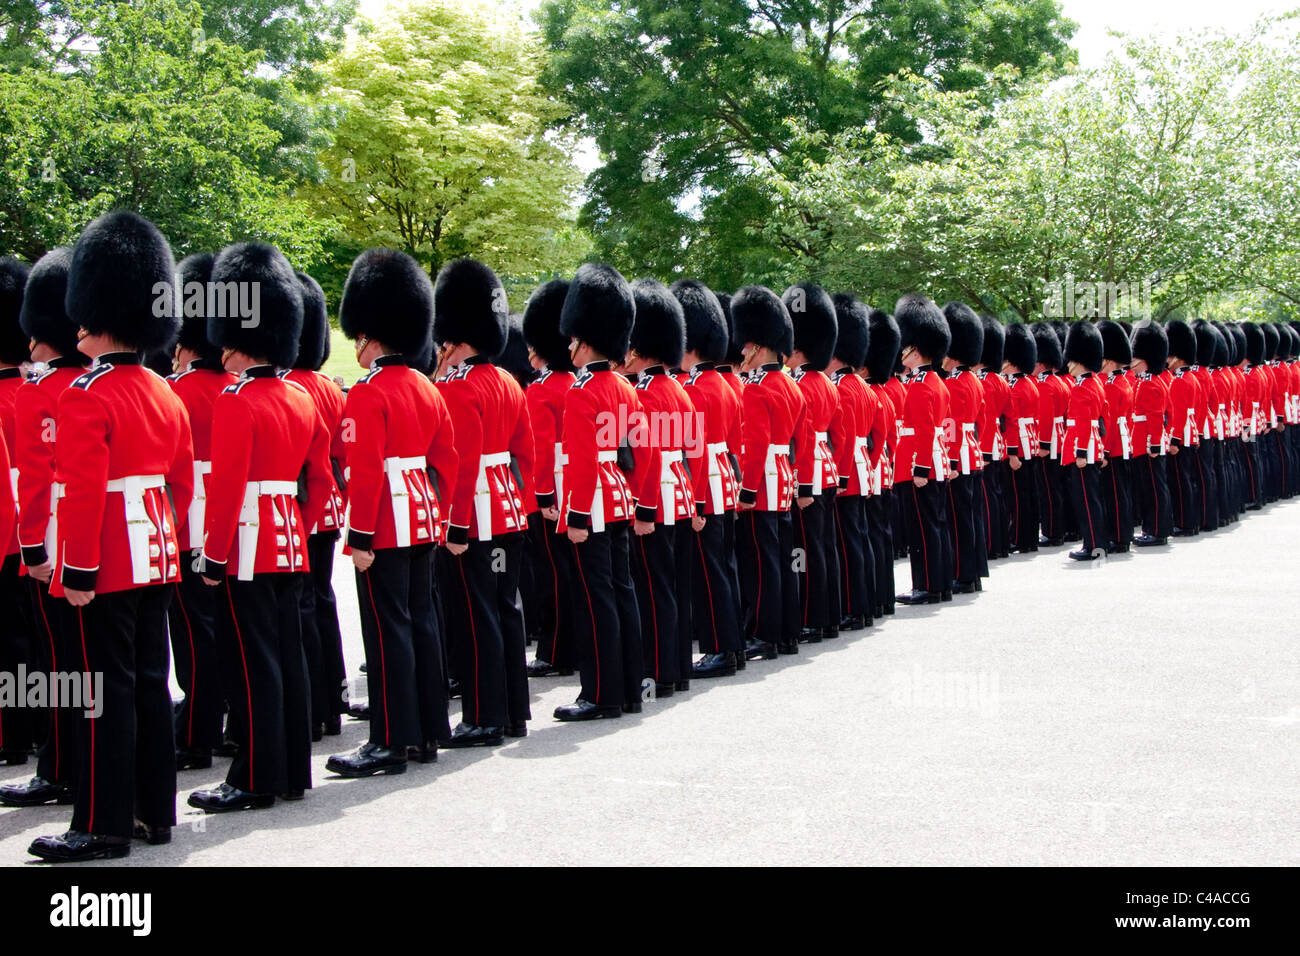 The 1st Battalion Scots Guards at the Freedom of Wantage Parade 21 May 2011. - Stock Image